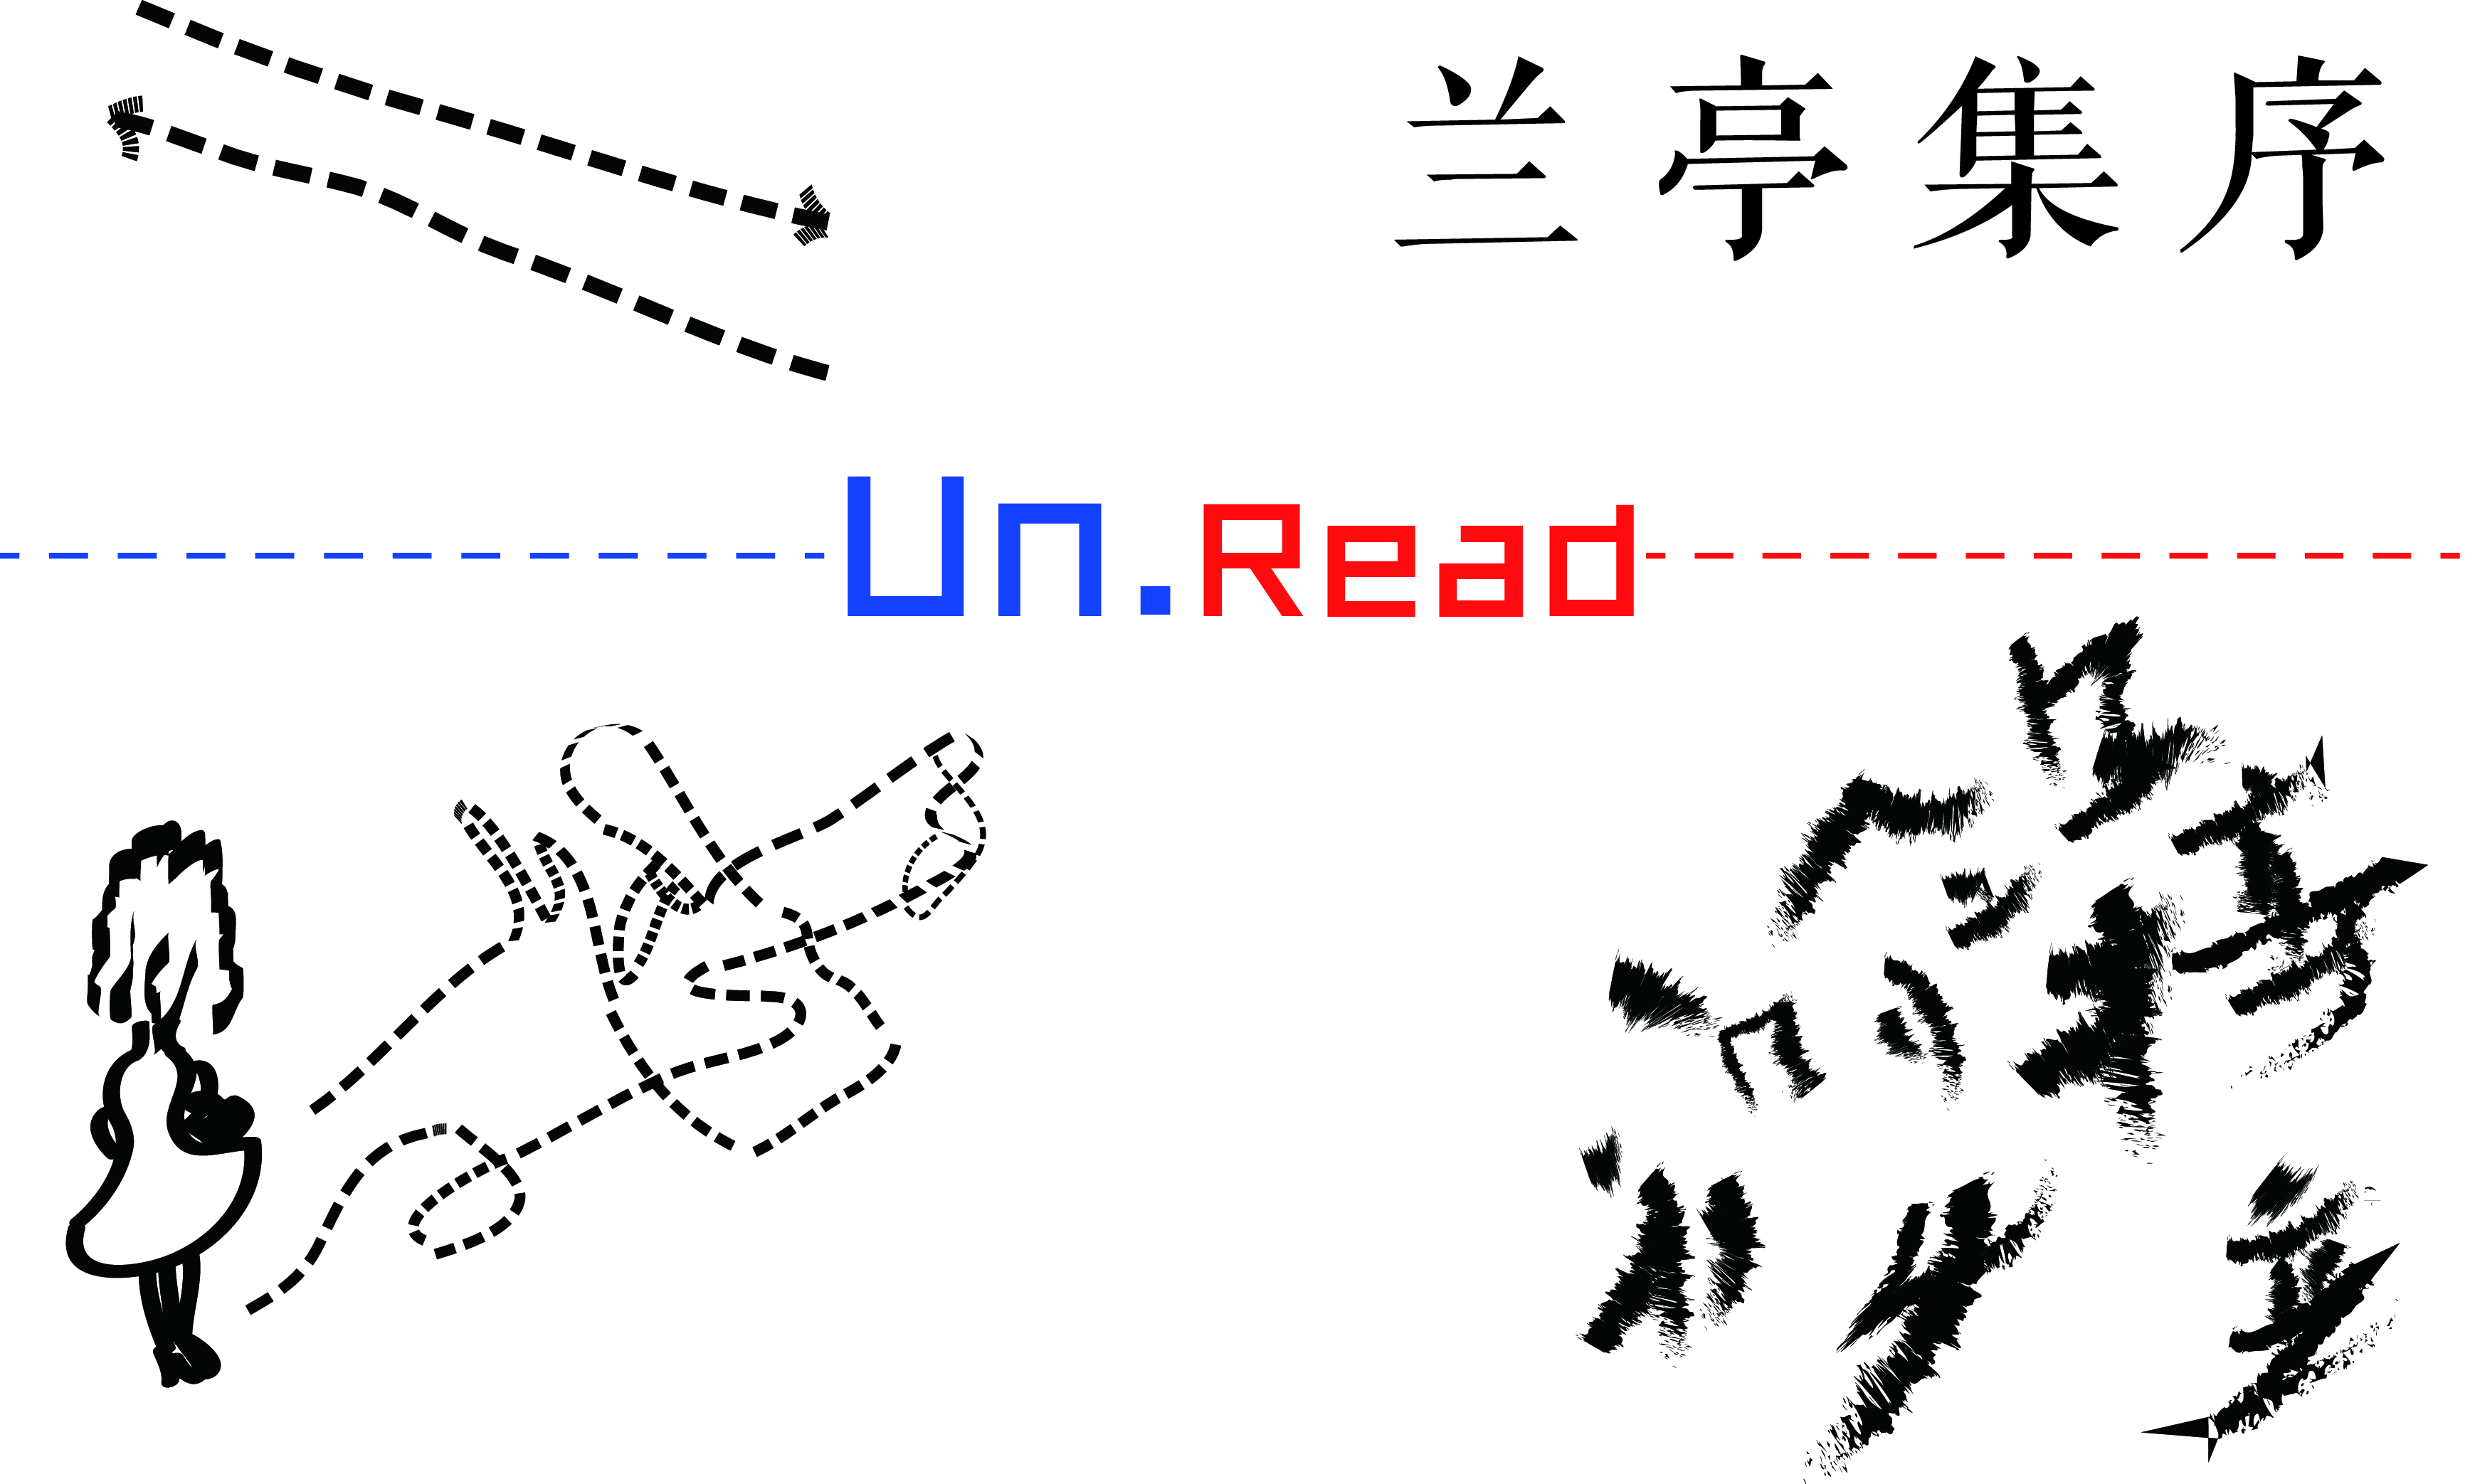 read vs  unread